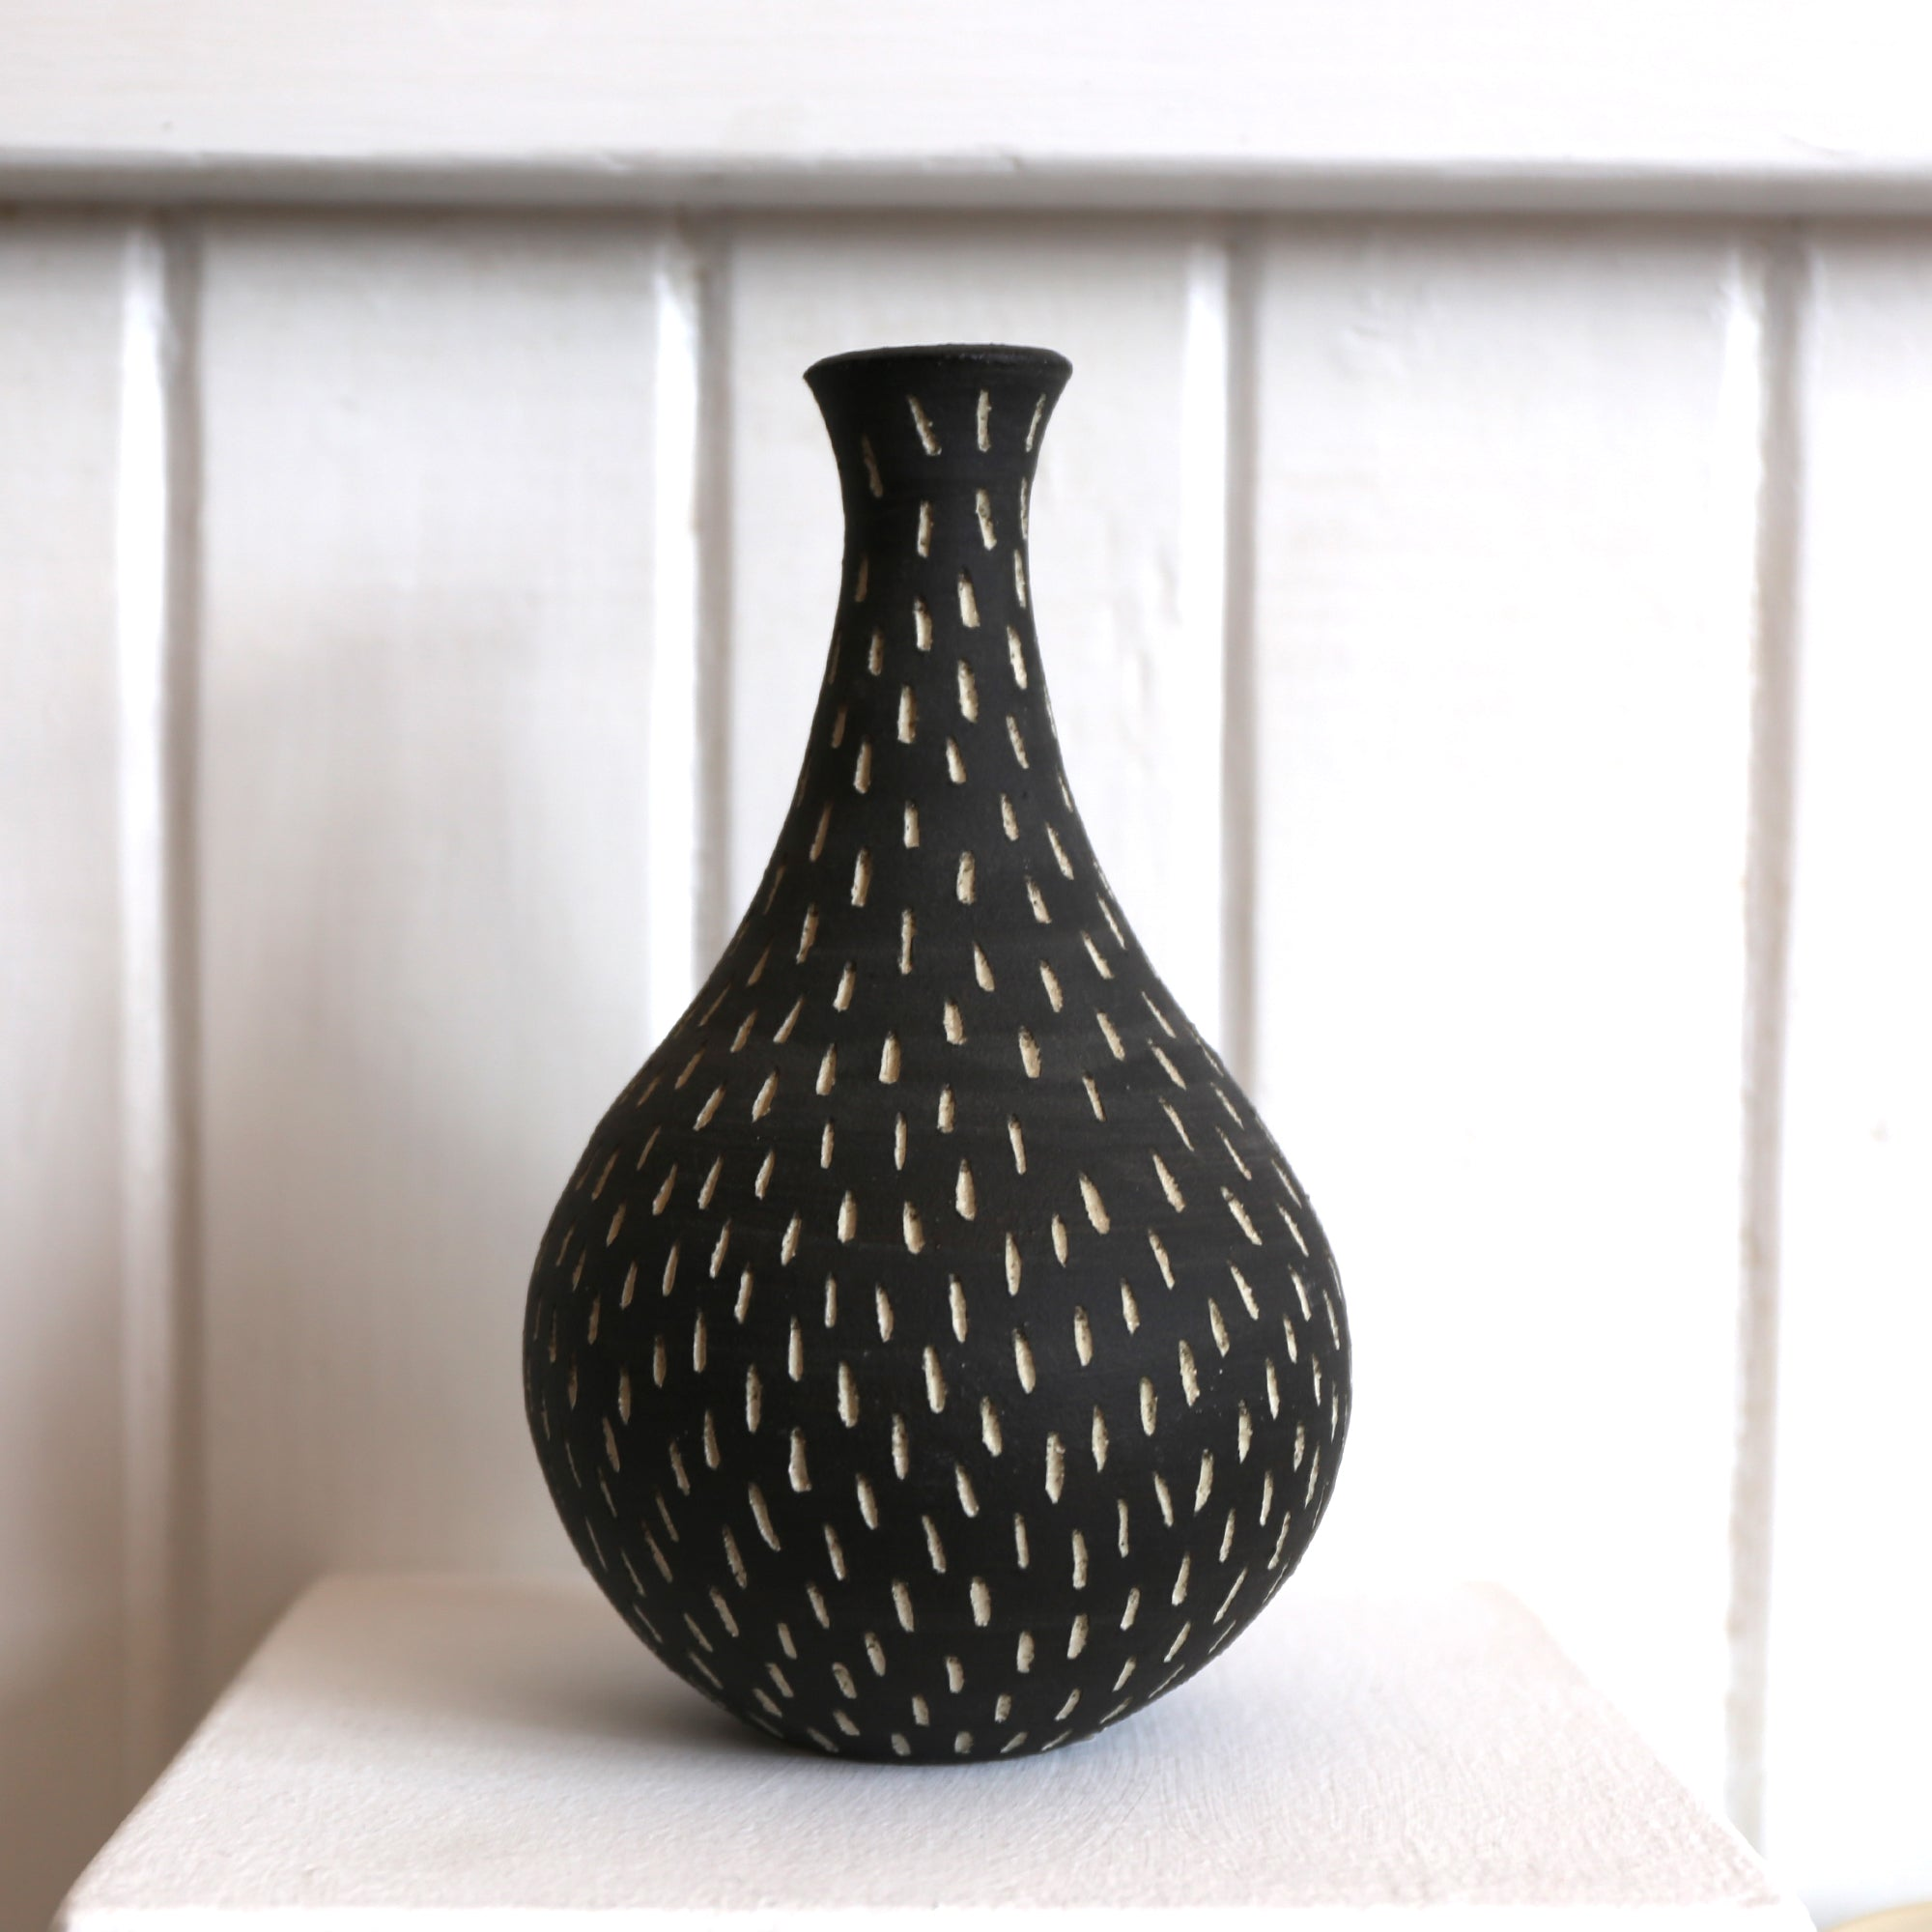 Dreaming Dog Studio - Genie Stem Charcoal Vase (npa025)